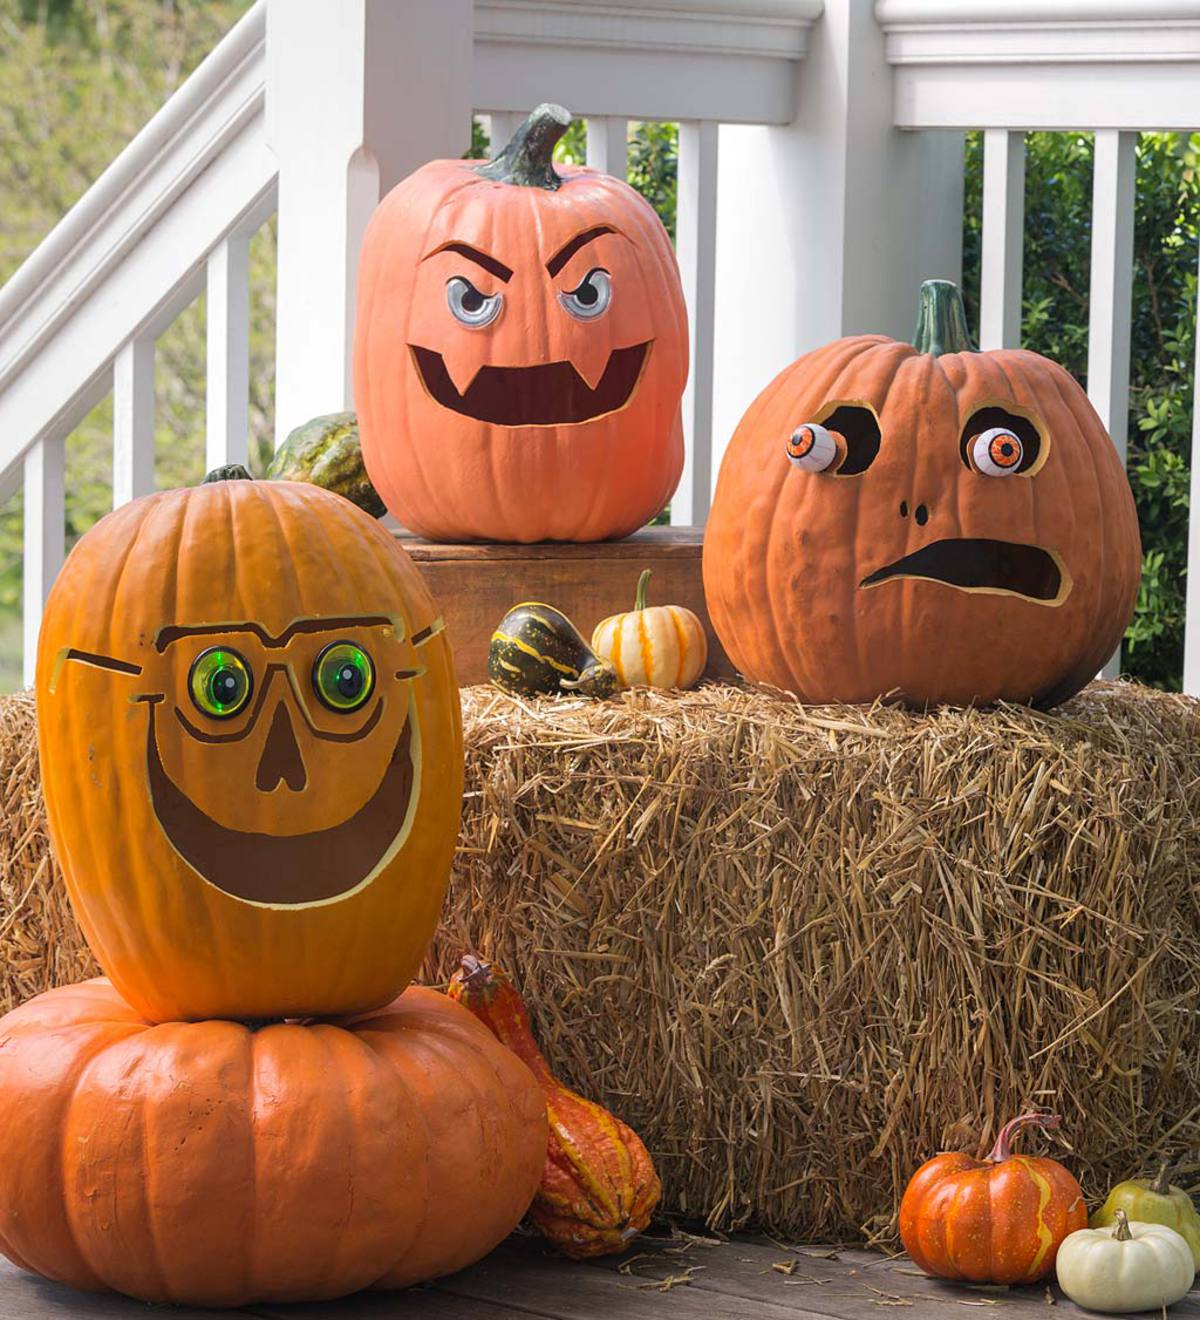 Light-Up Decorative Pumpkin Eyeballs (set of 3)